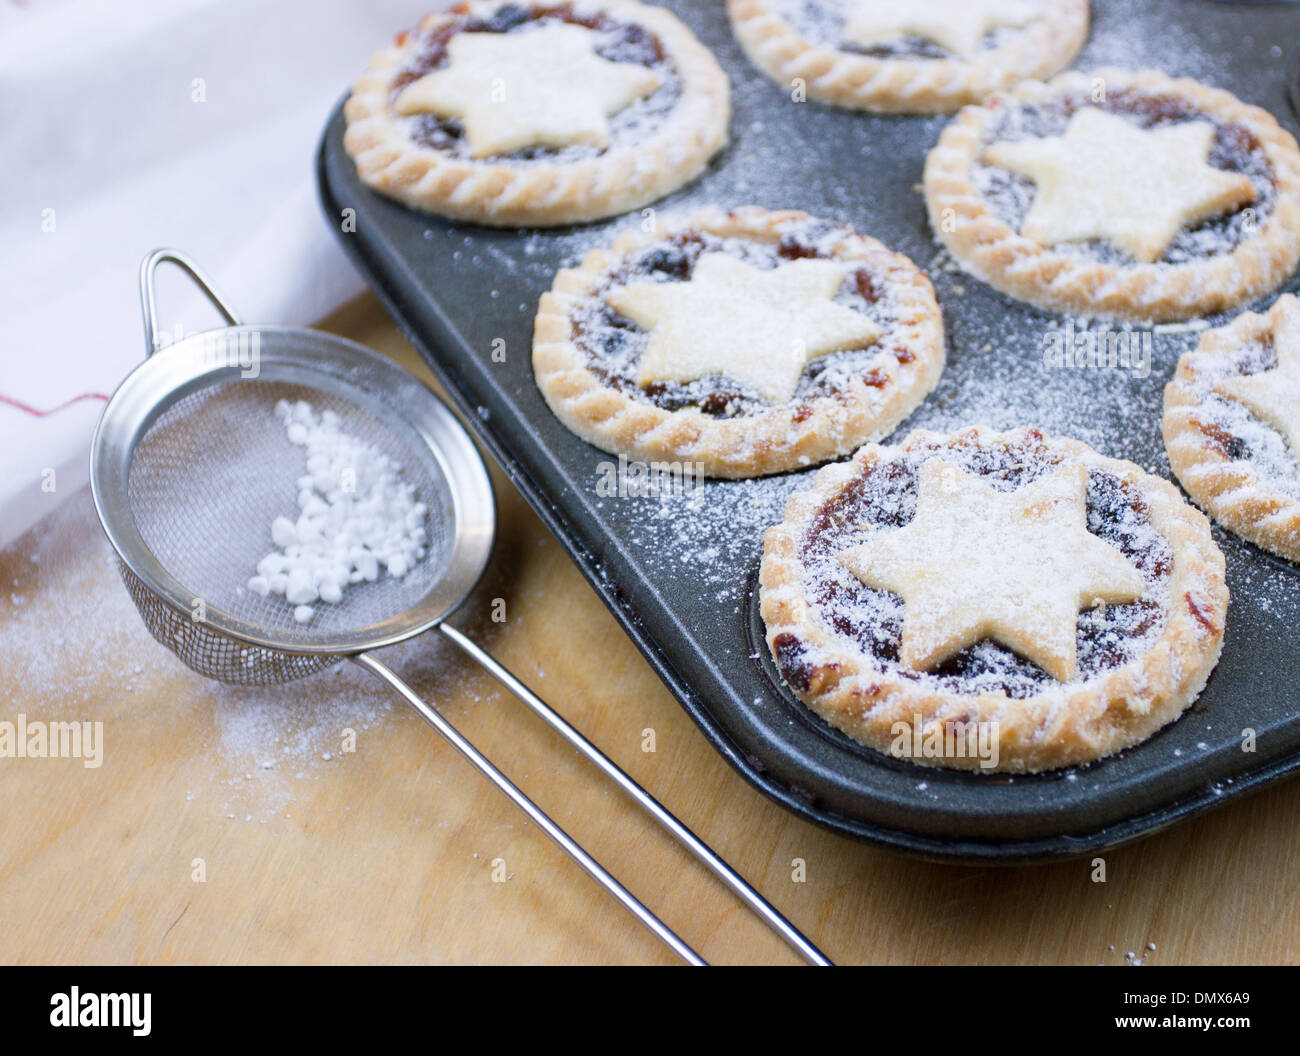 Home made icing sugar dusted mince pies in baking tray - Stock Image